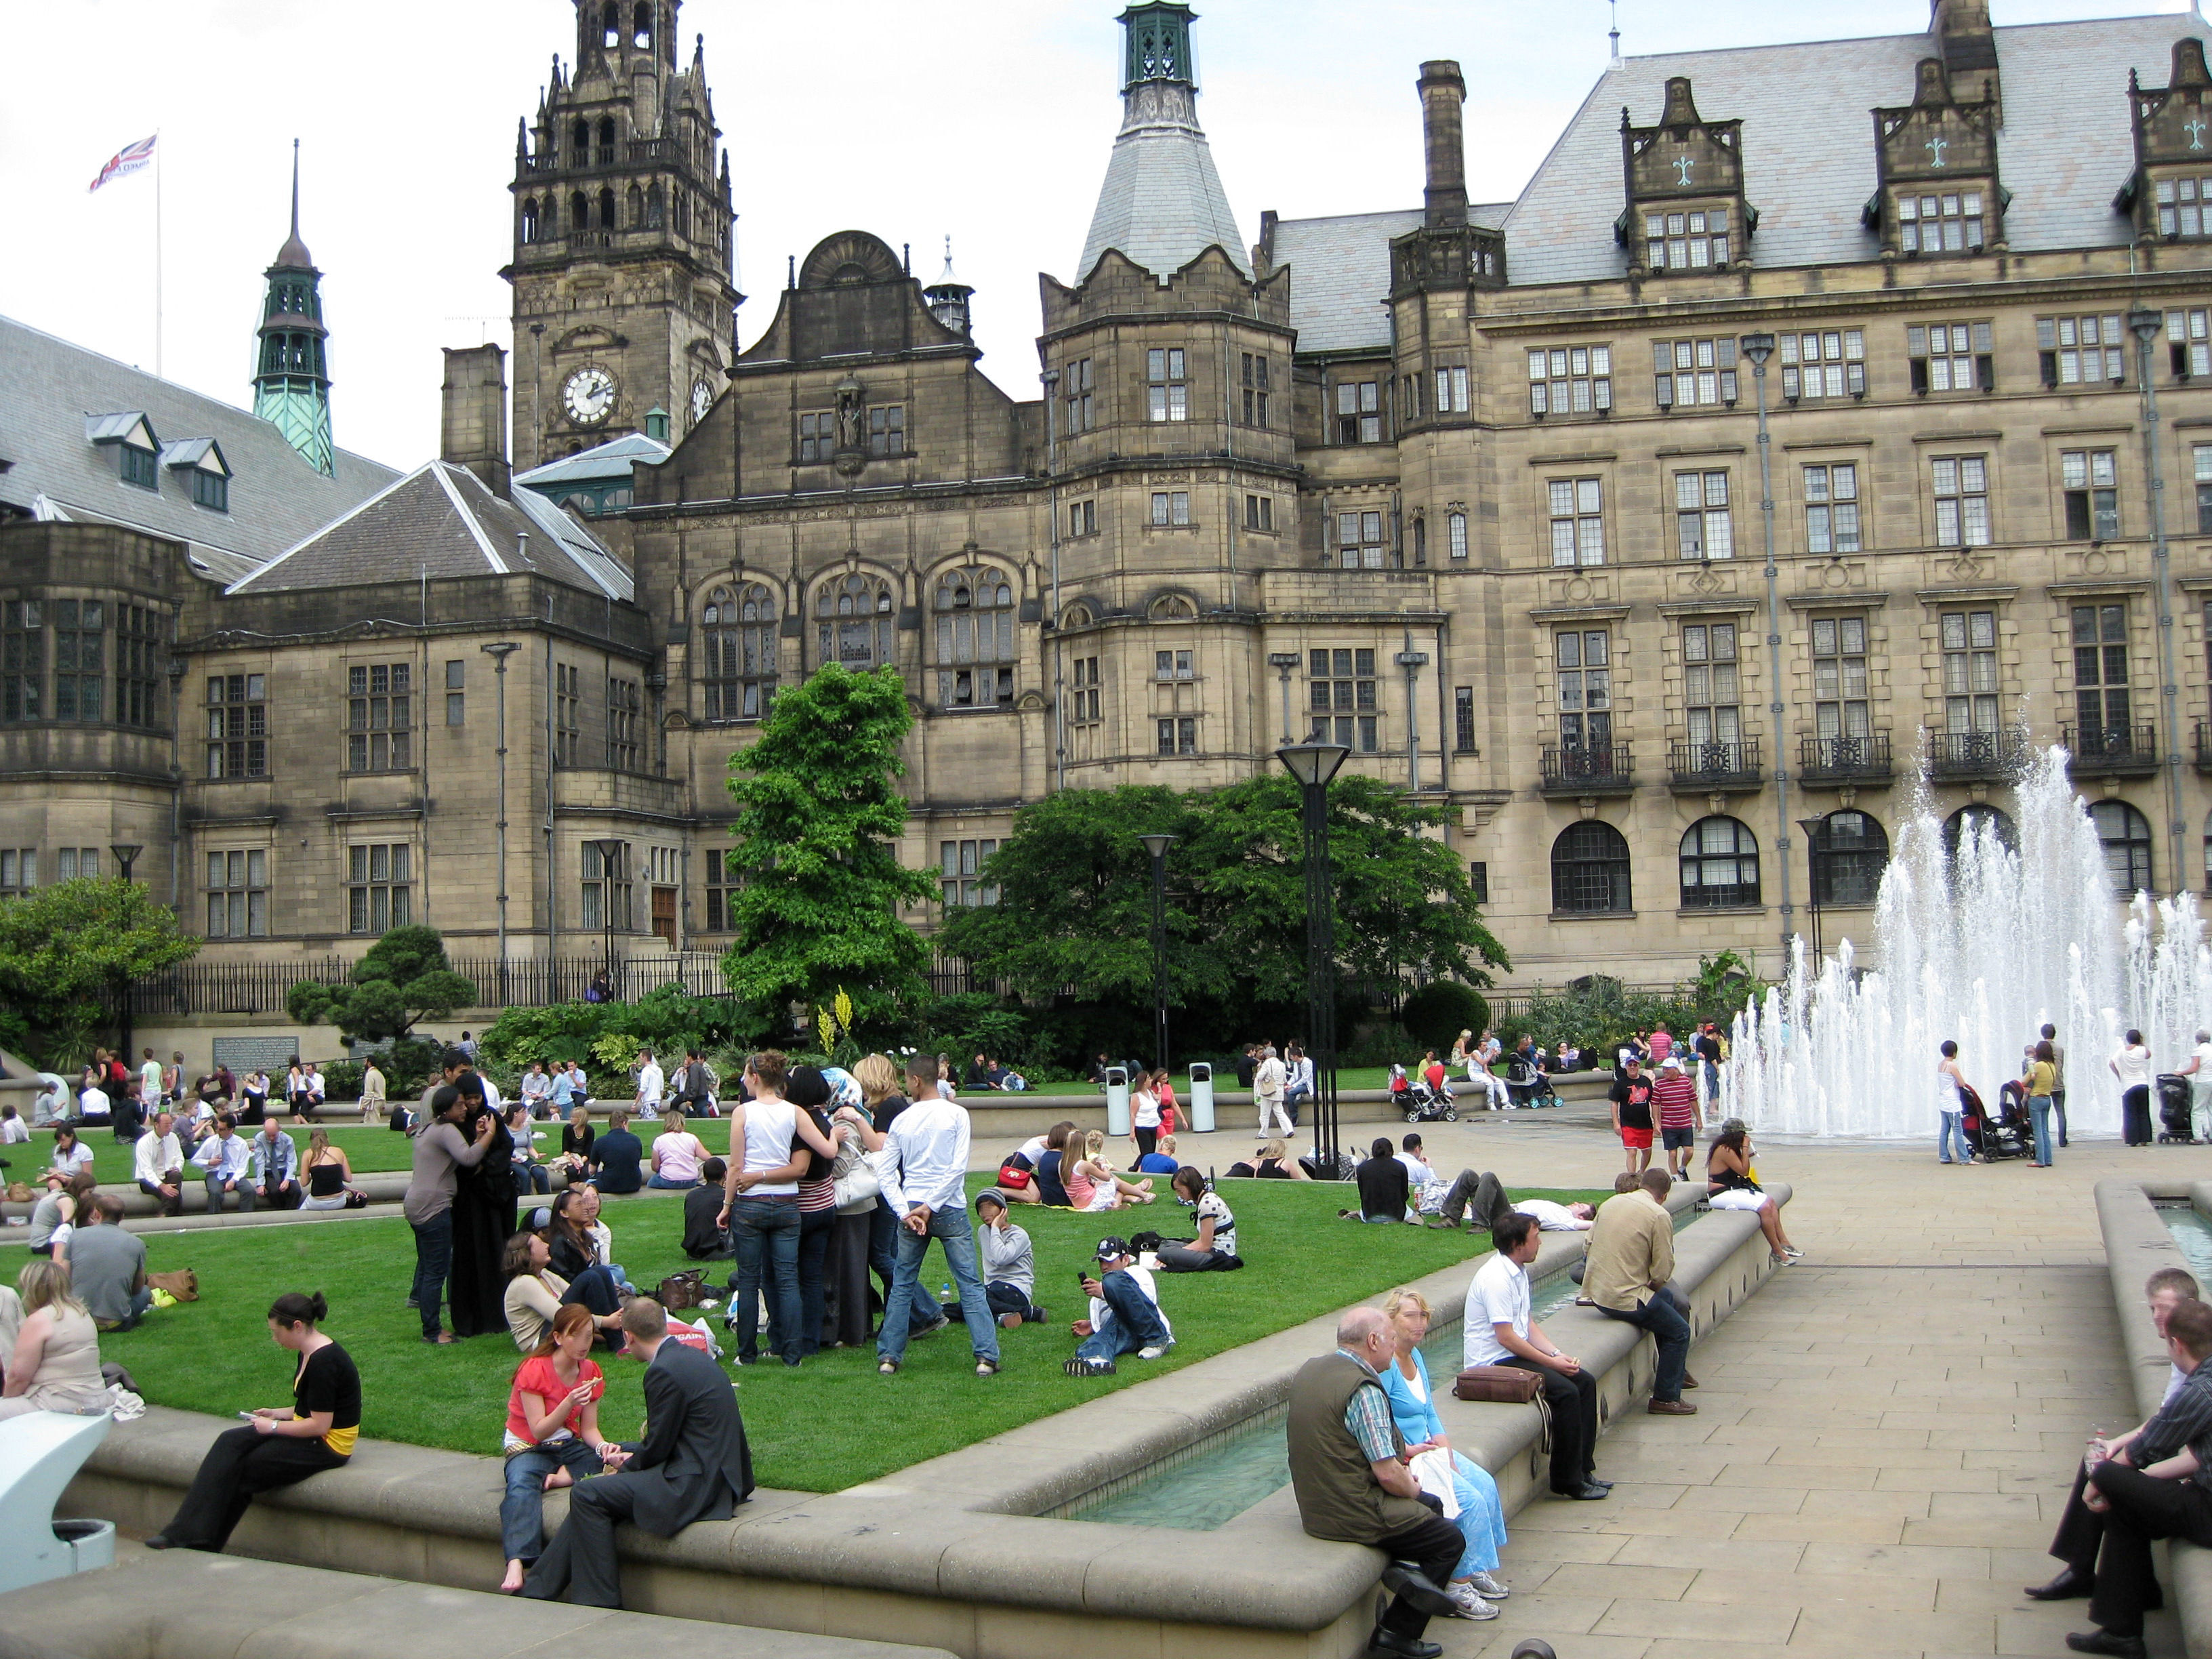 sheffield-town-hall-in-england.jpg?profile=RESIZE_710x